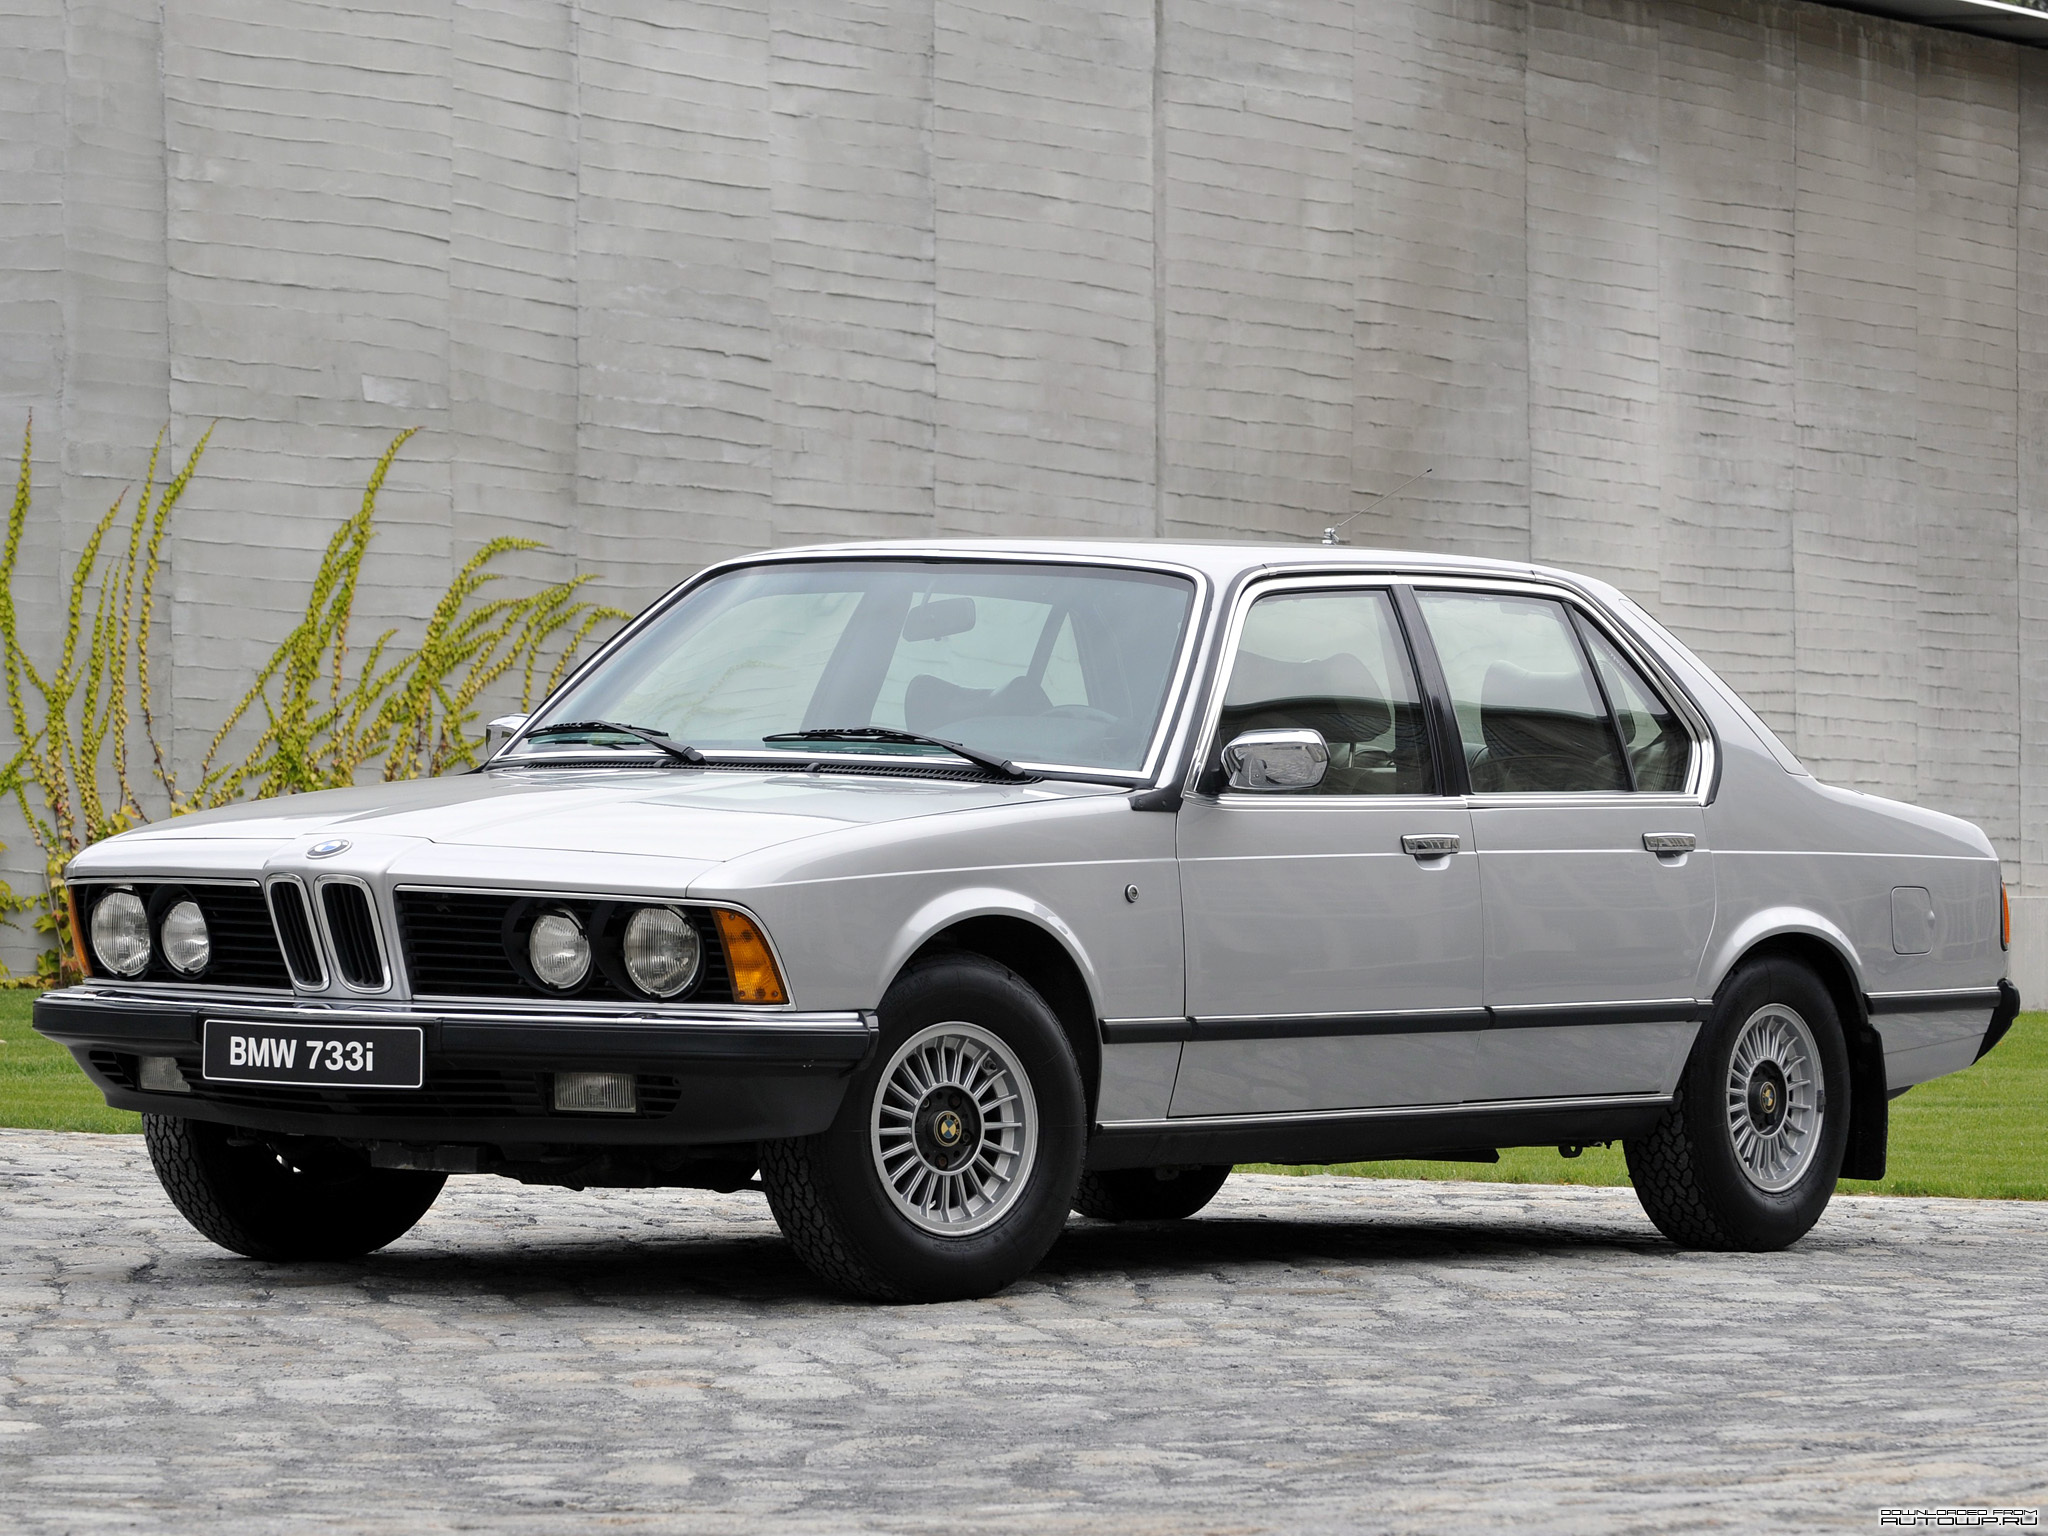 Bmw 7 Series E23 733i Electrical Troubleshooting Manual 1982 Wiring Diagram And Security 039197786